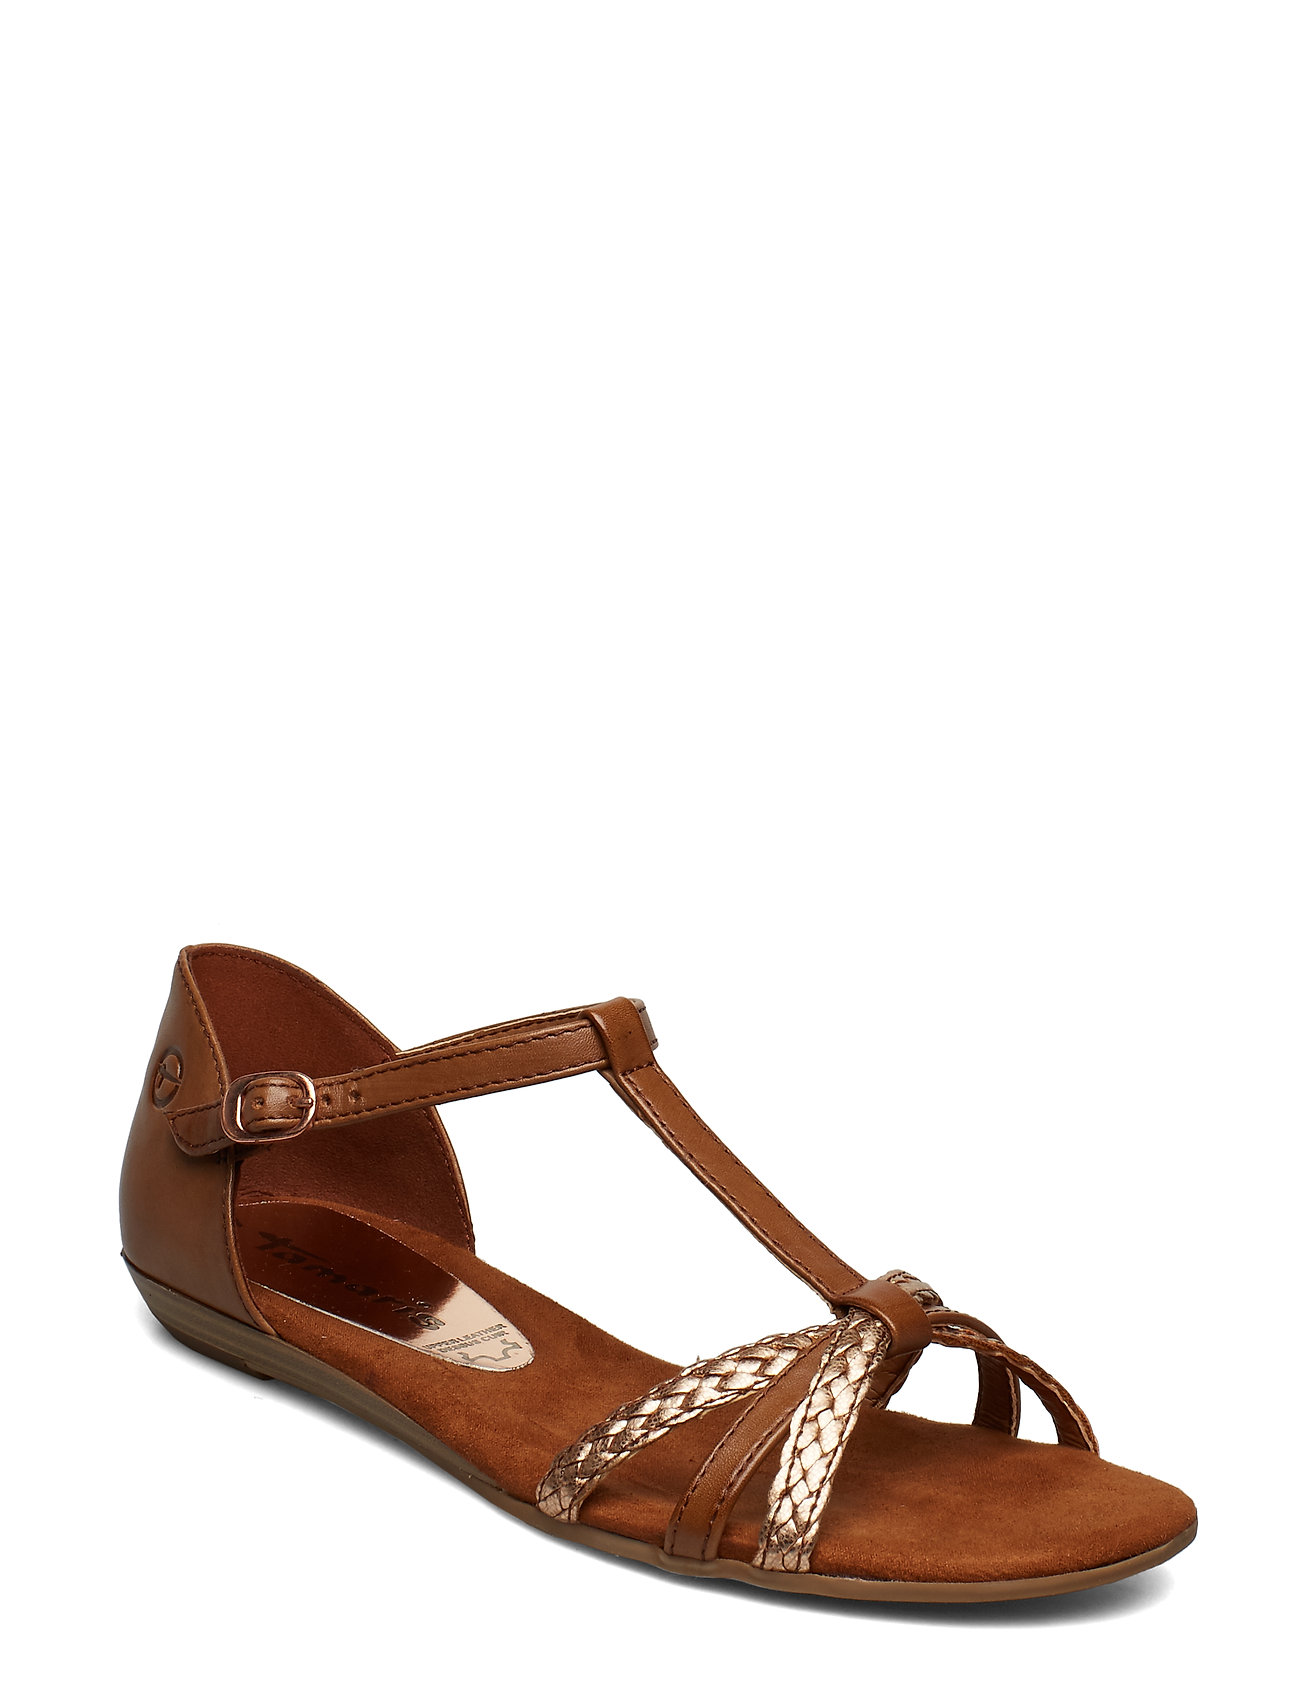 Tamaris Sandals - COGNAC/COPPER